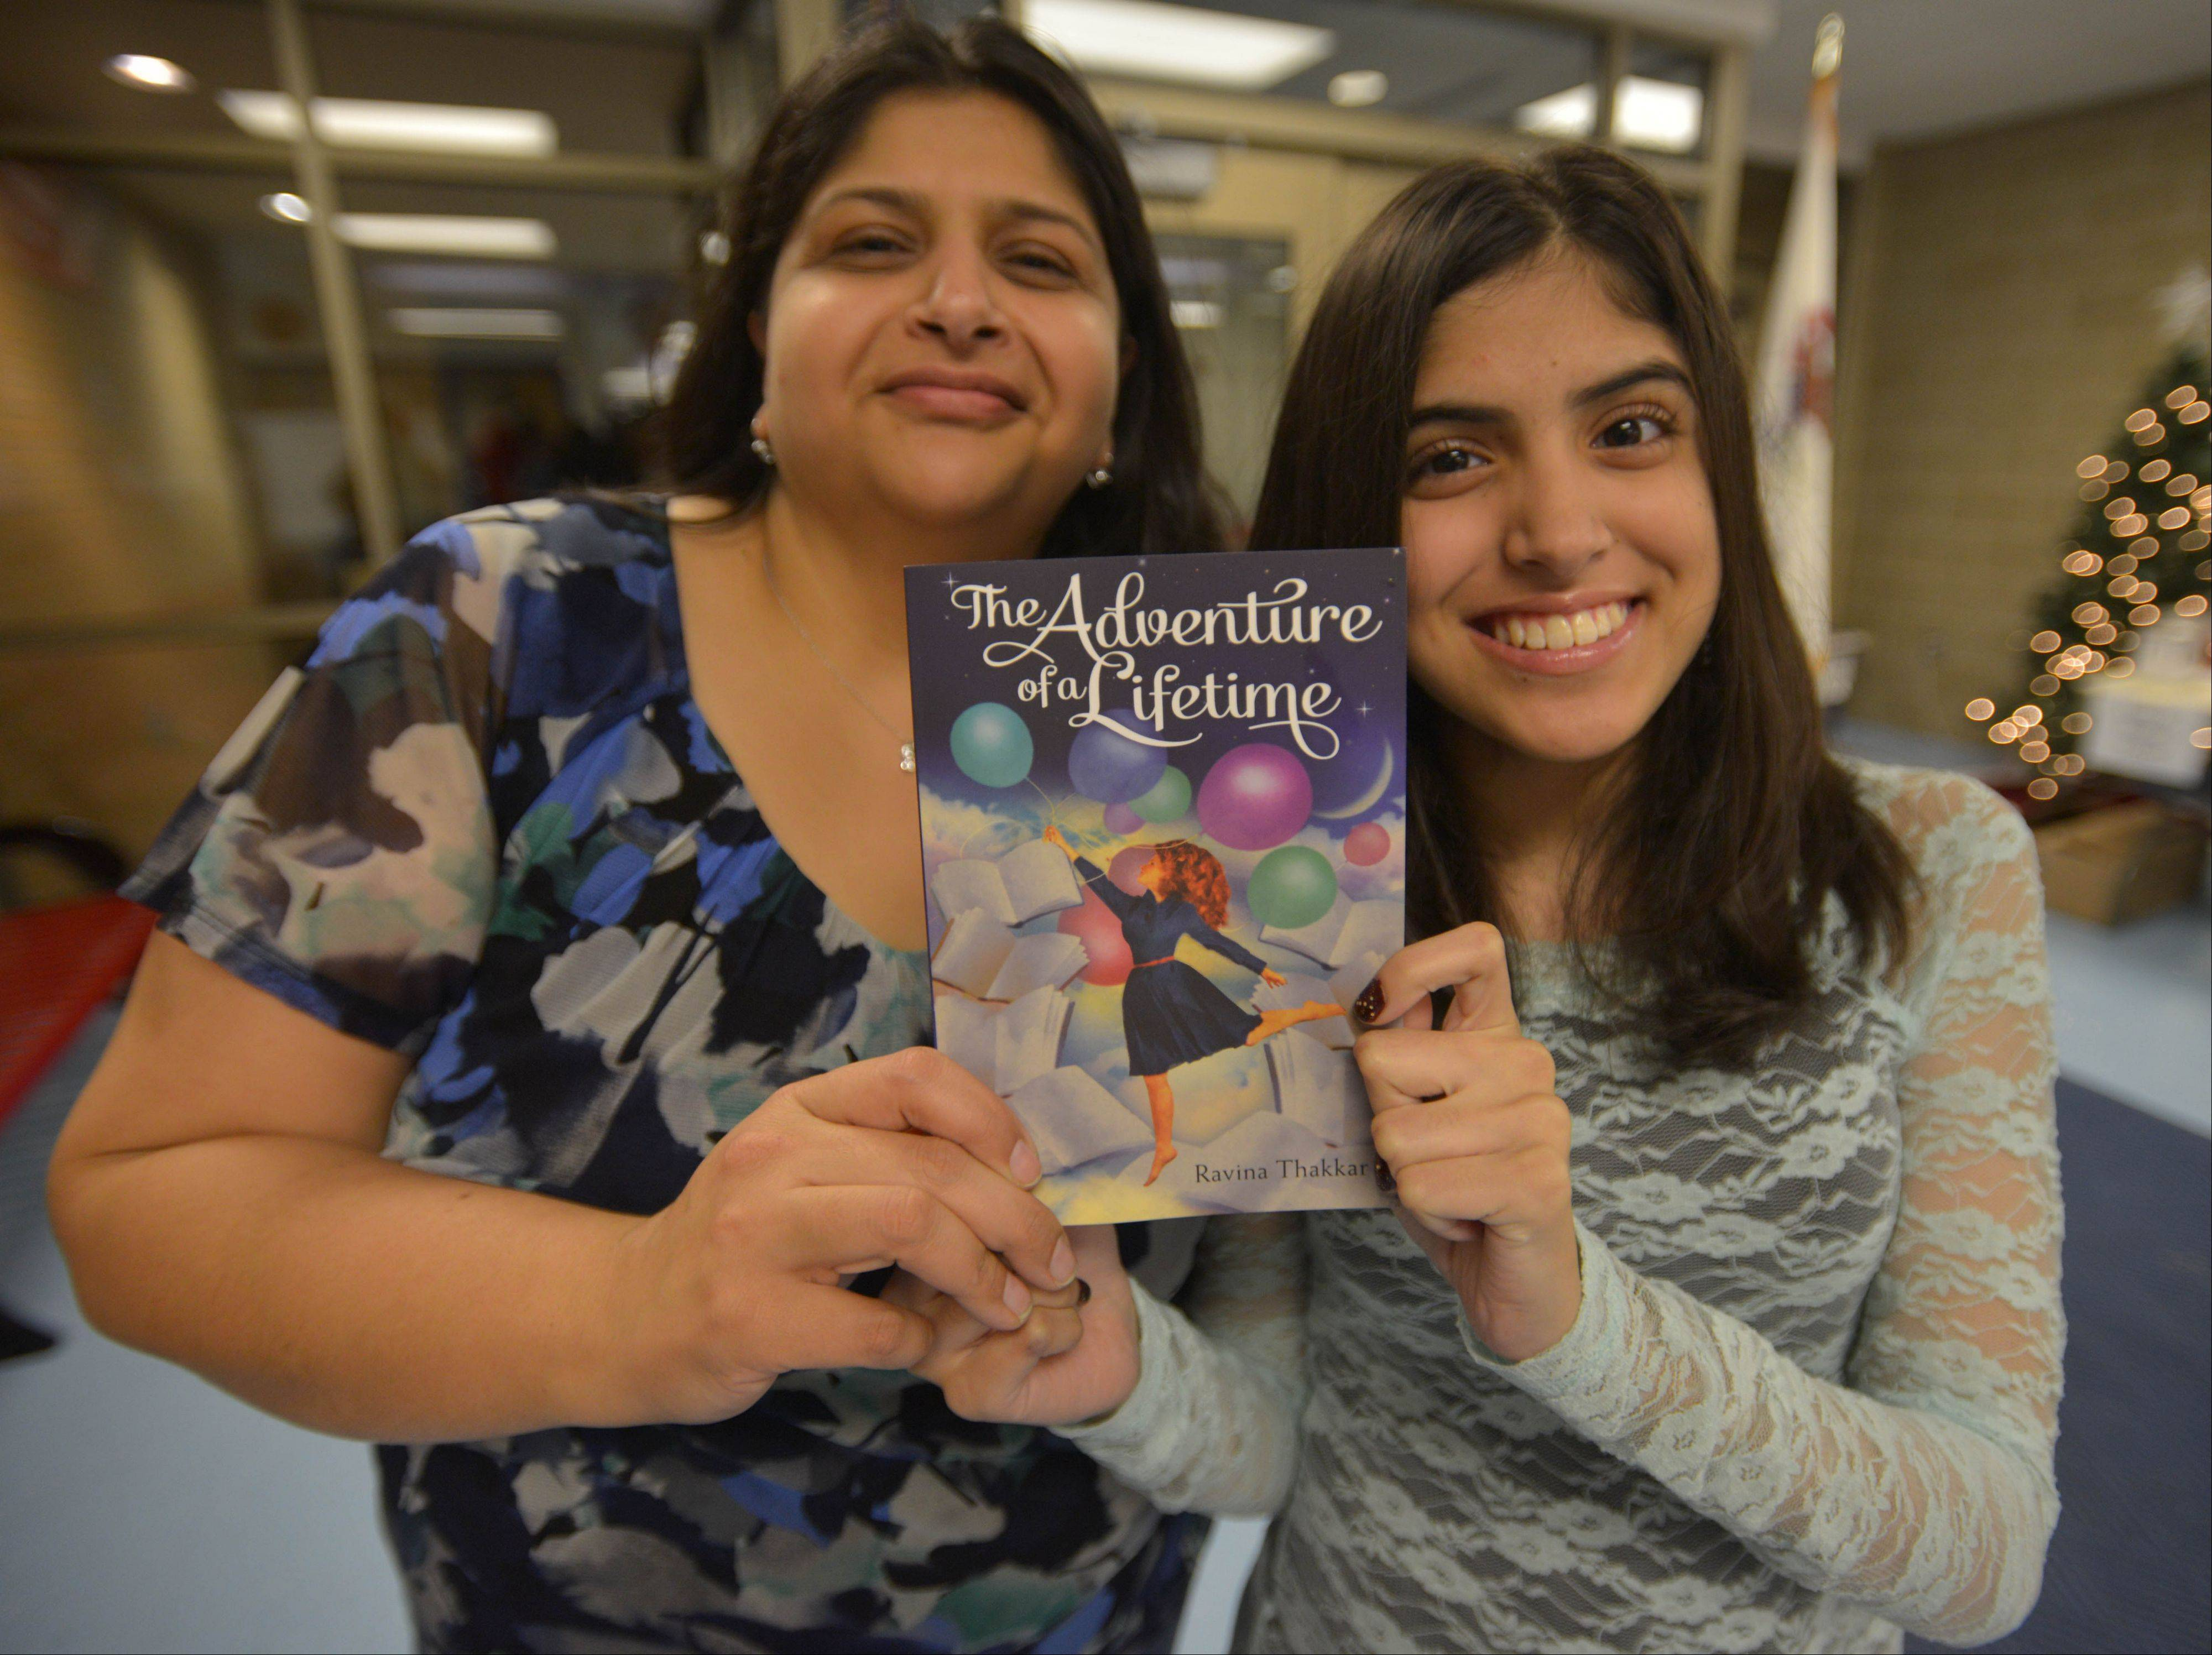 Instead of requesting a dream vacation or a chance to swim with dolphins, Ravina Thakkar asked Make-A-Wish to help her become a published author. Ravina and her mom, Krishna, celebrate the success on Ravina's 14th birthday with her novel, published this week by Sourcebooks of Naperville.